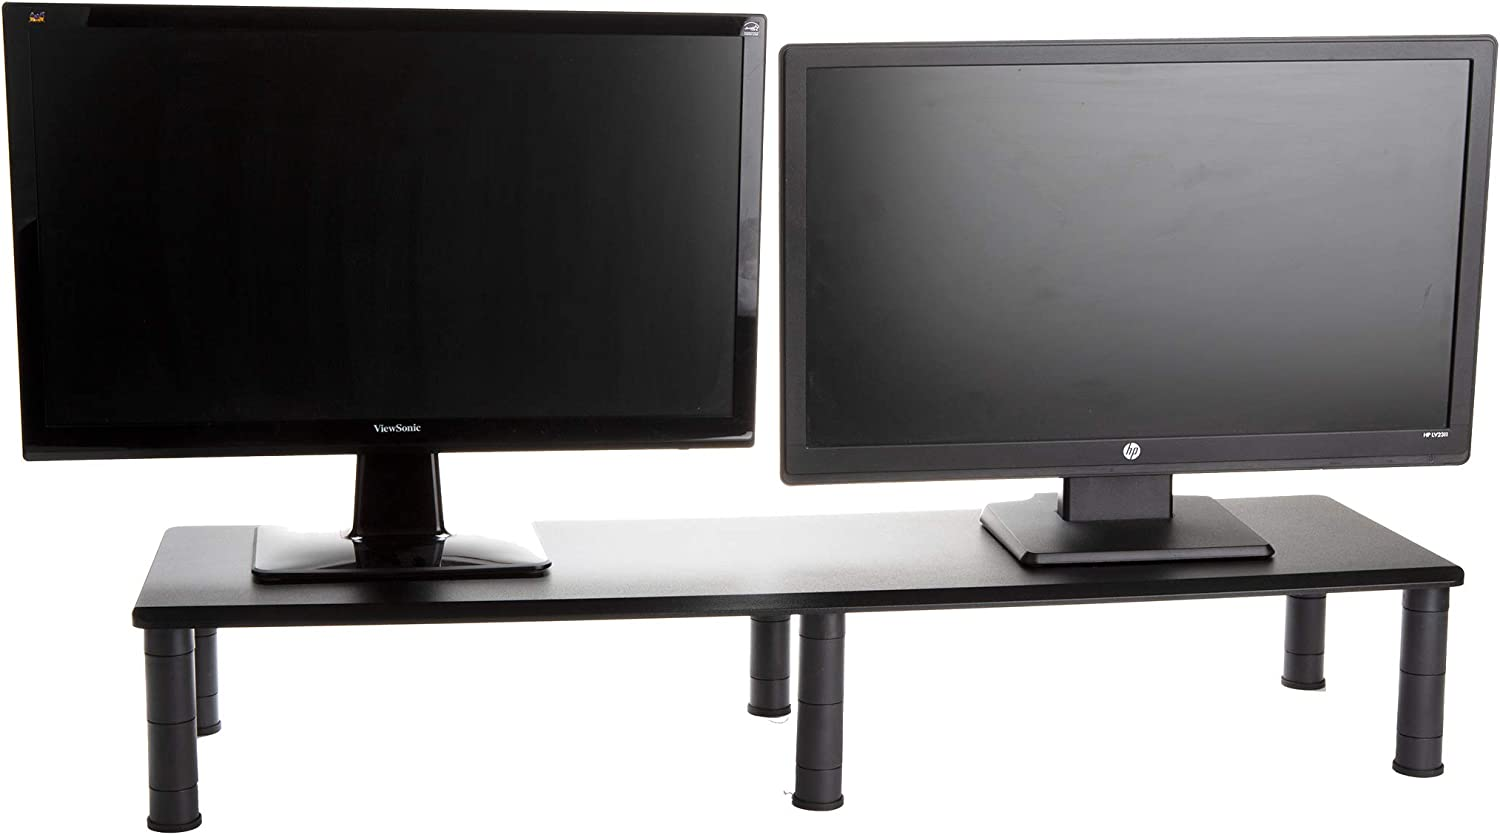 Mind Reader DUBMO-BLK Large Dual Stand for Computer Screens, Riser Support The Heaviest Monitors, Printers, Laptops, TV's, Perfect Shelf Organizer for Office Desk Accessories, Height Adjustable, Black